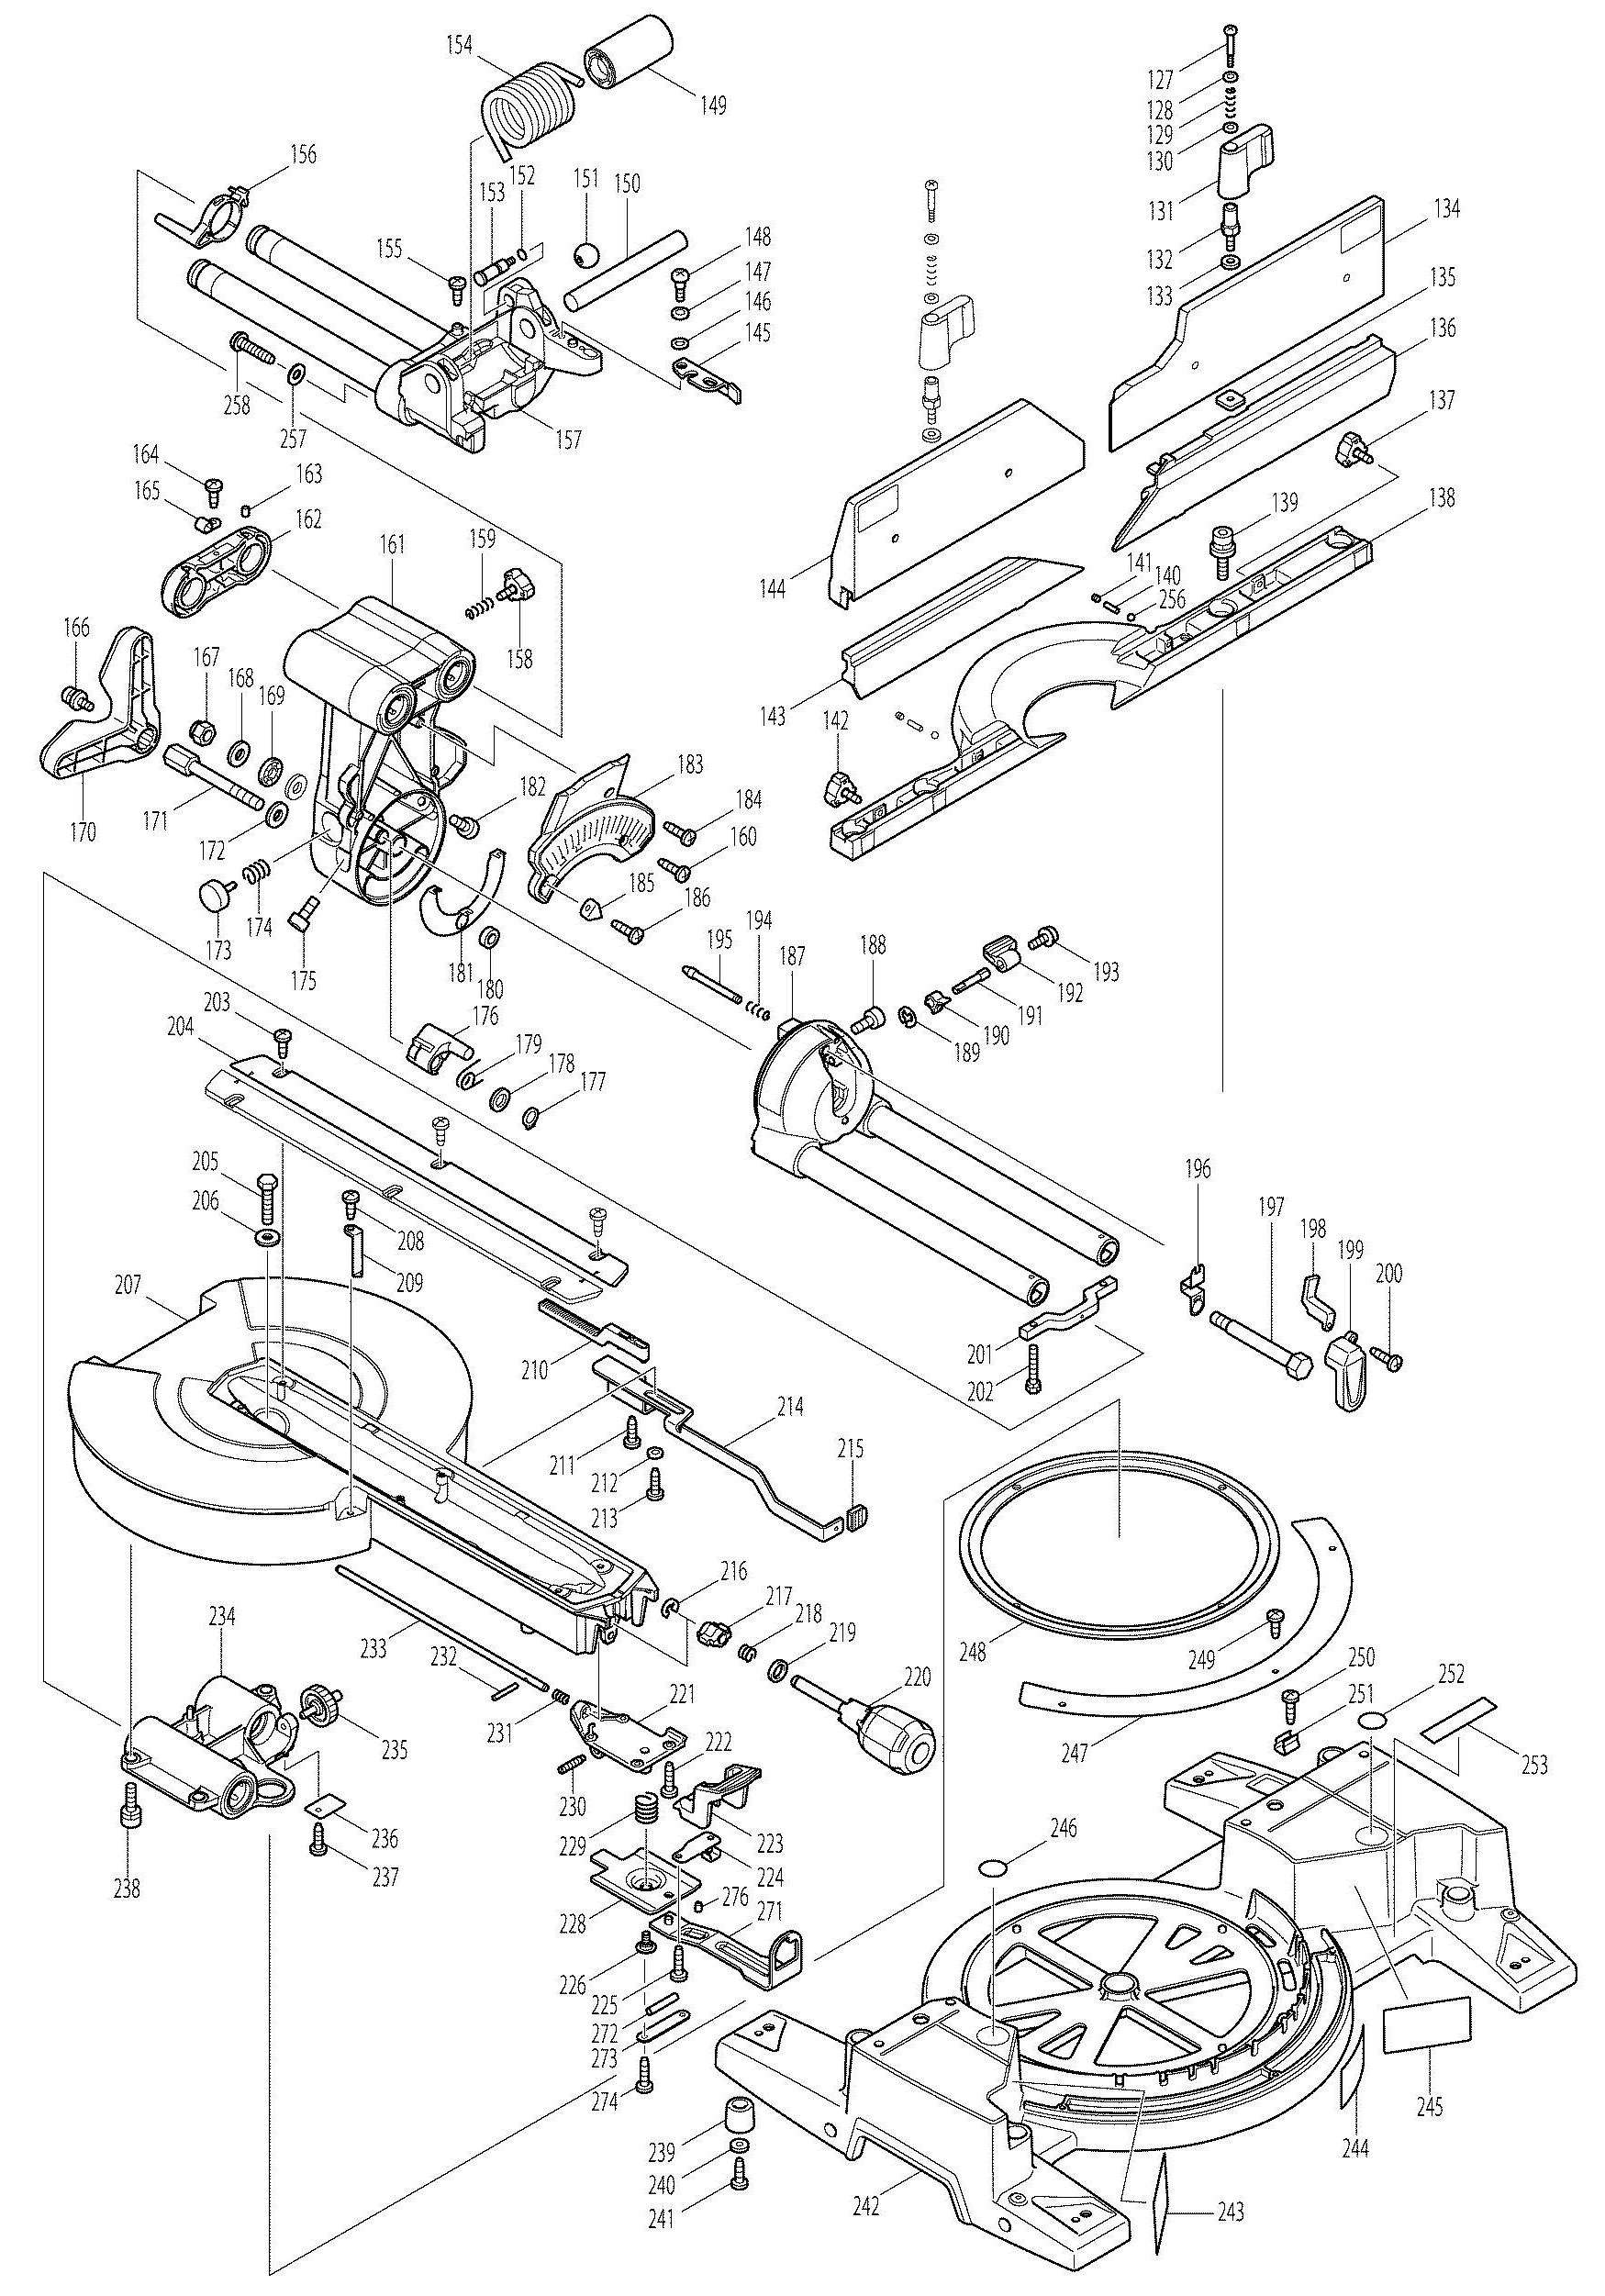 Kenwood Kdc 2019 >> Radio Wiring Diagram Kenwood Kdc 148. Radio. Car Wiring ...